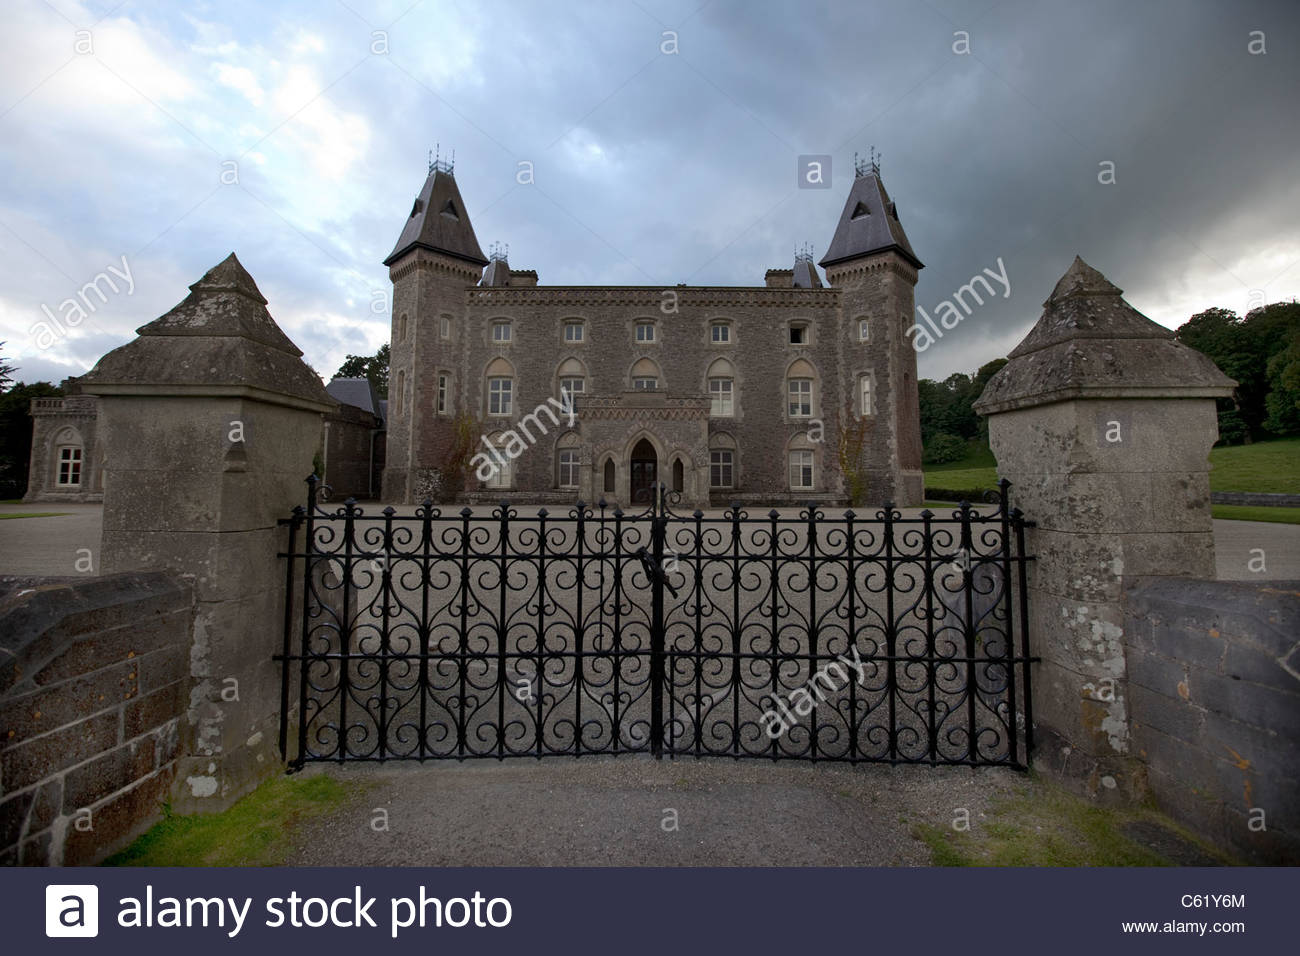 Dinefwr Llandeilo, Newton House in Dinefwr Country Park, Llandeilo, Wales - owned by ...